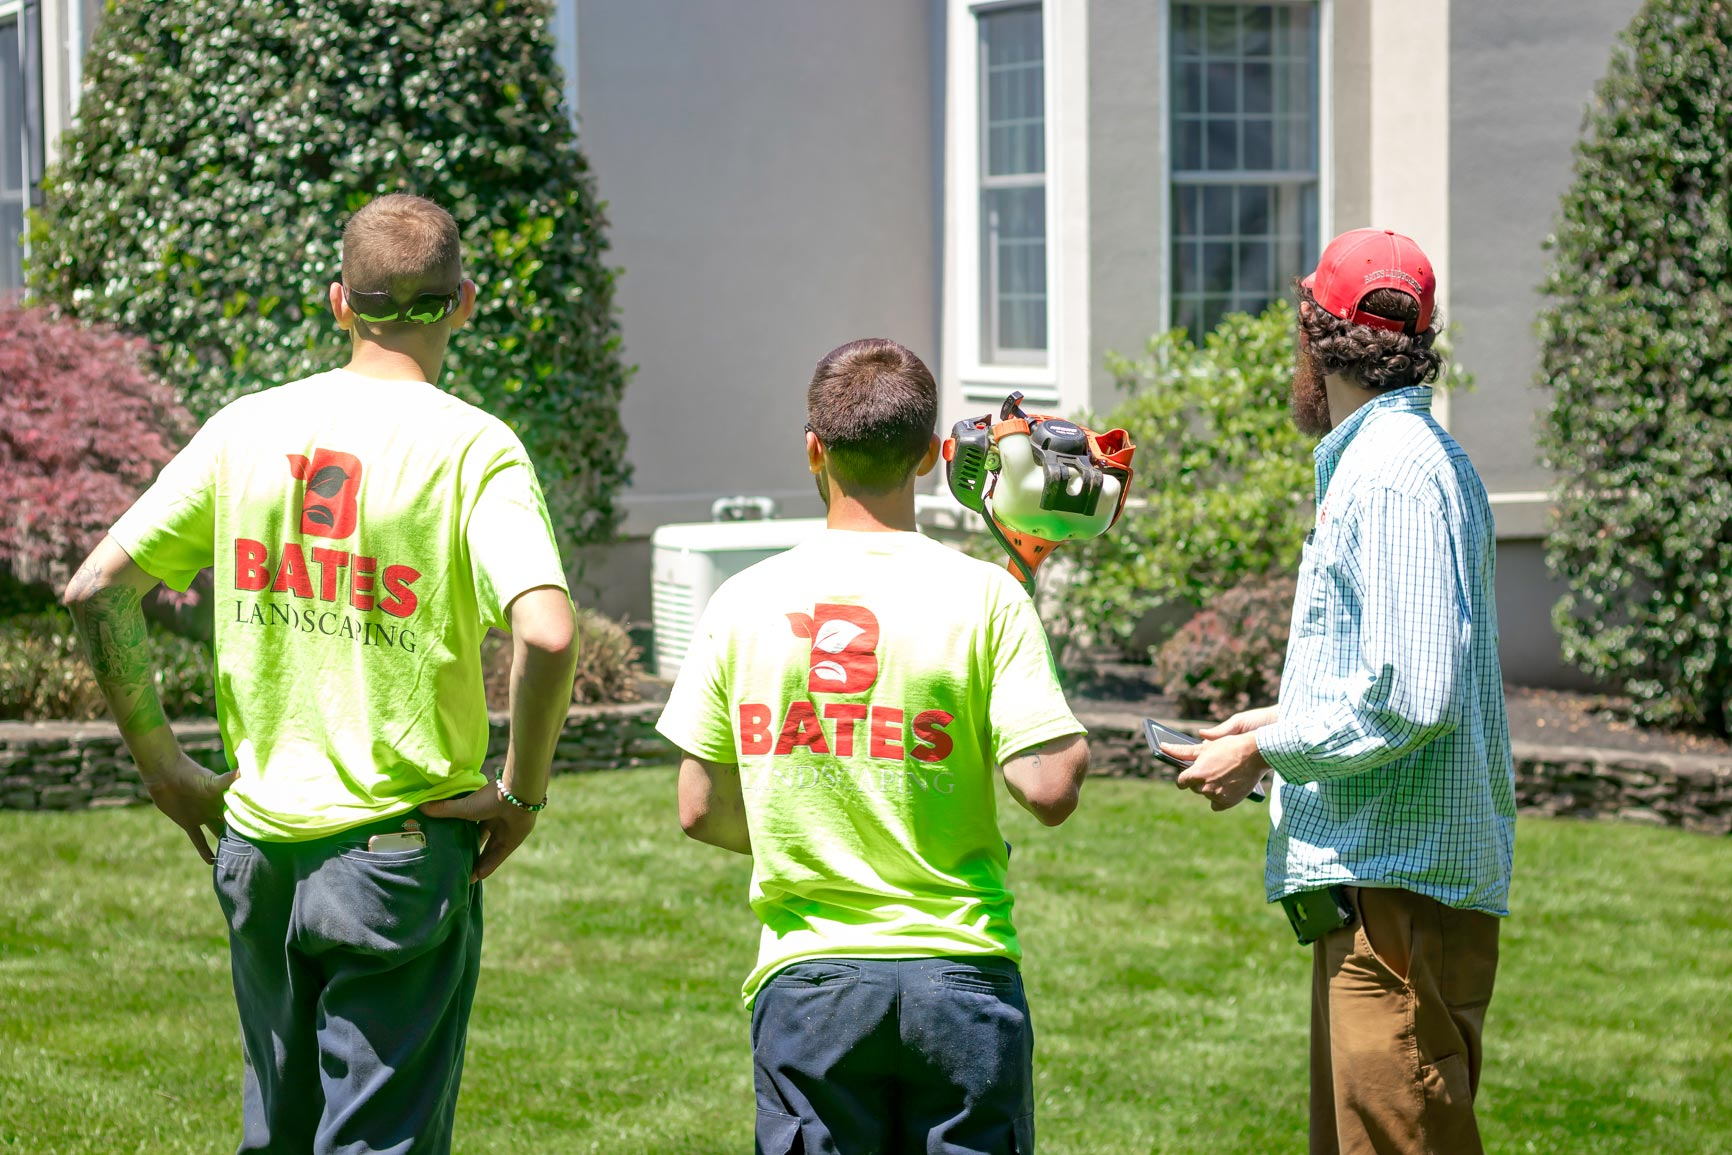 bates-landscaping-summer-pictures-web-265